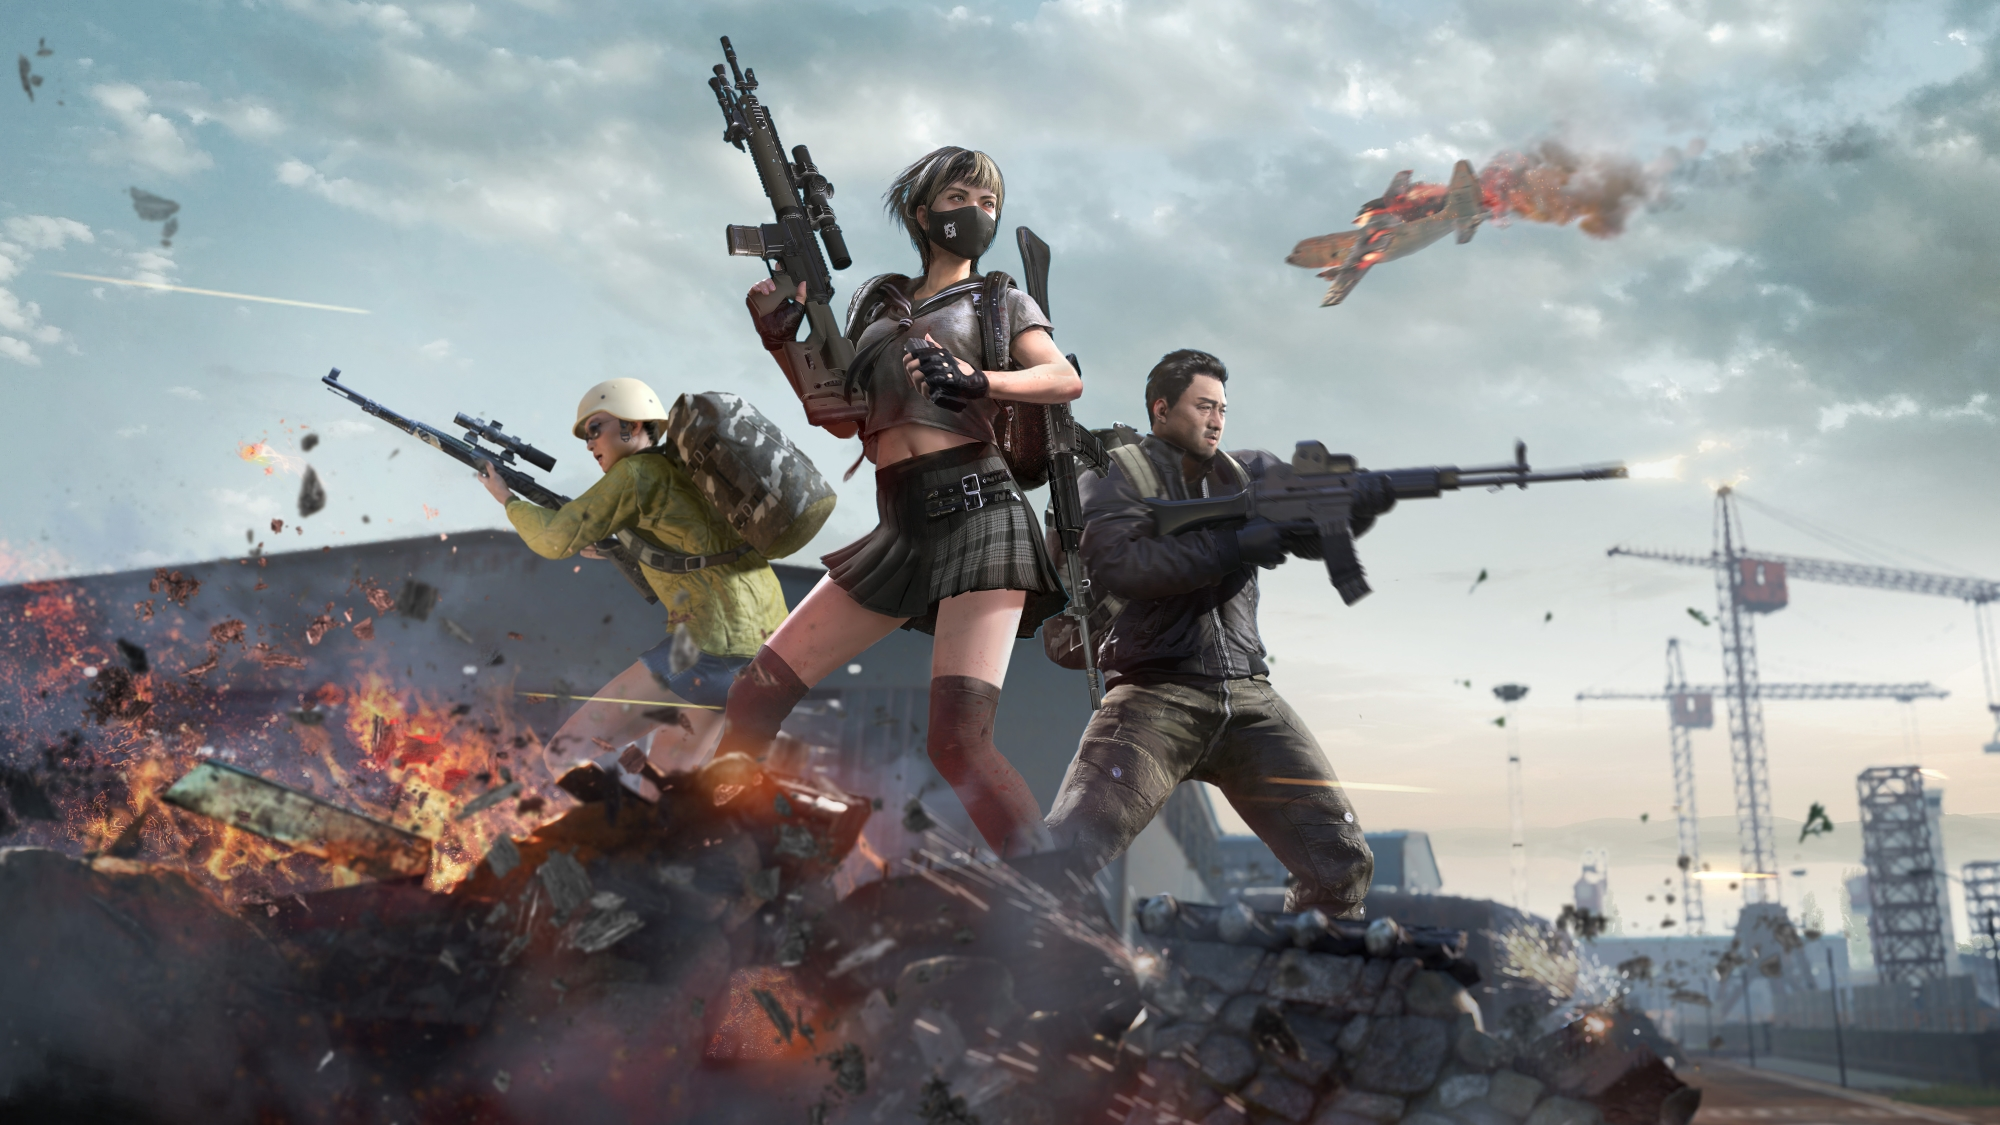 Key art from PUBG: Battlegrounds of several players fighting in the Korean Taego map